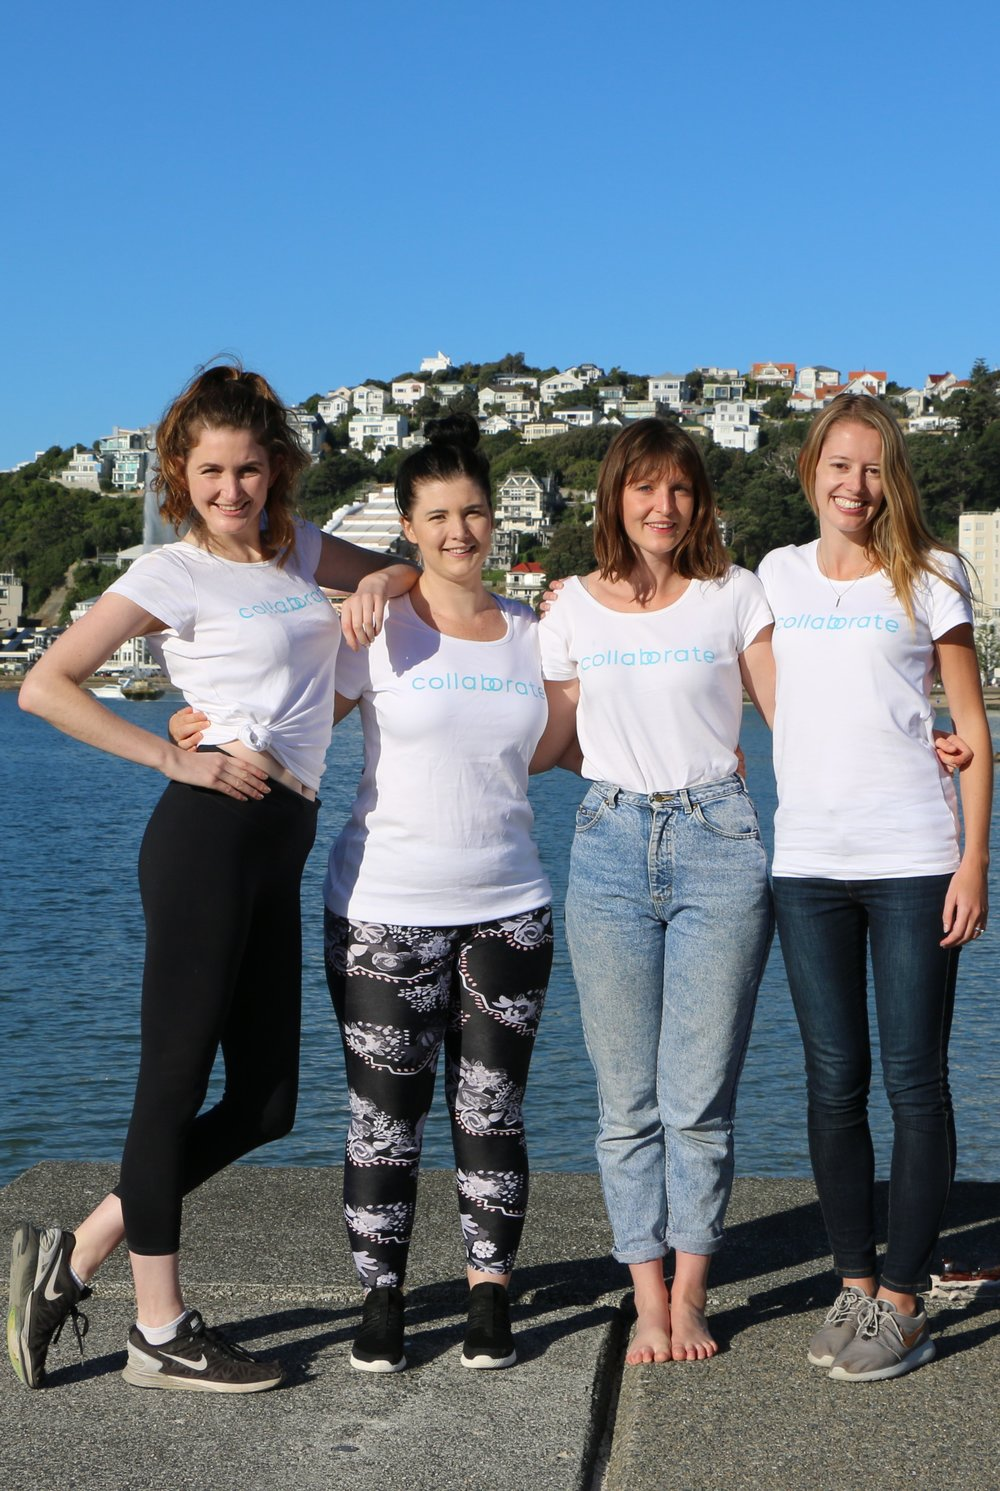 The team - Keeping the app and collaboration humming is a volunteer powered team based all over New Zealand. Get to know the amazing team here.